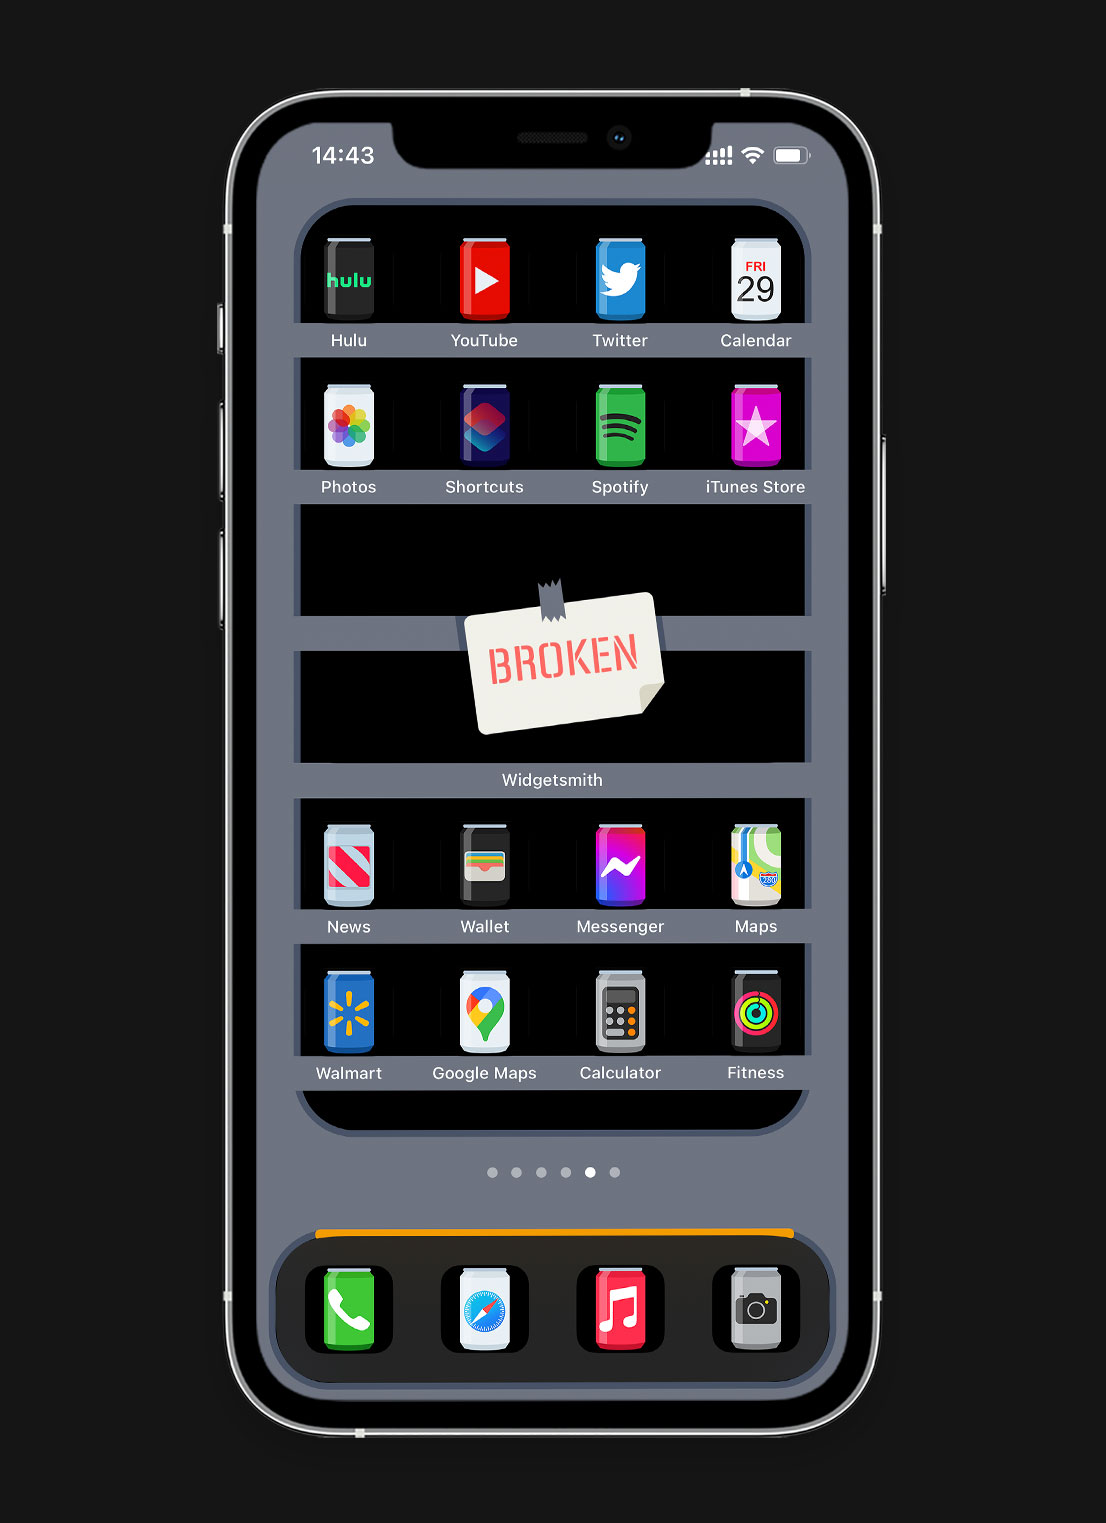 soda cans ios app icons pack preview 4